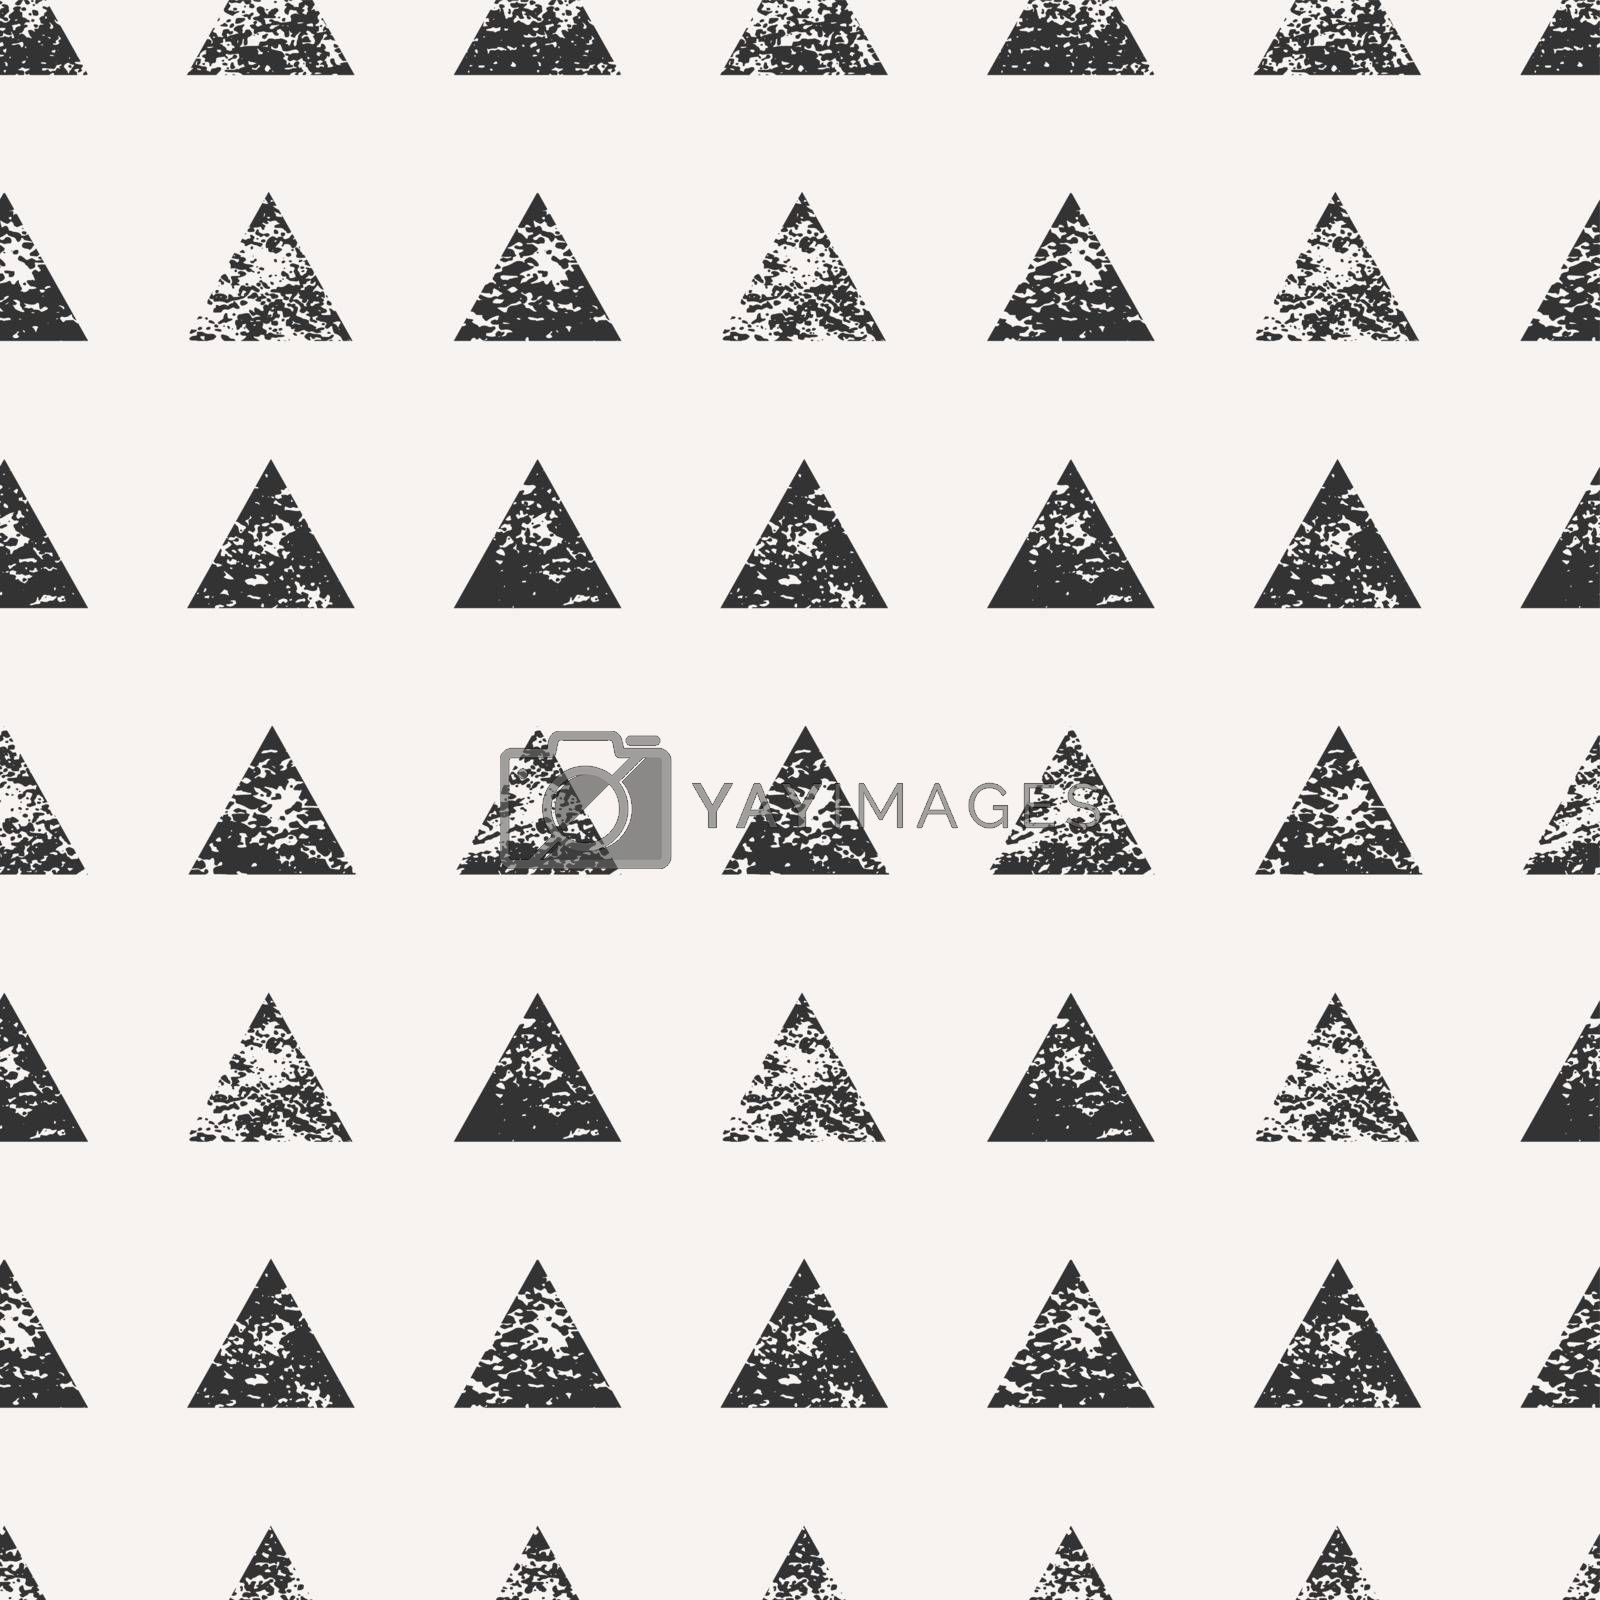 Abstract seamless pattern with stamped triangular shapes. Hand drawn watercolor geometric pattern.